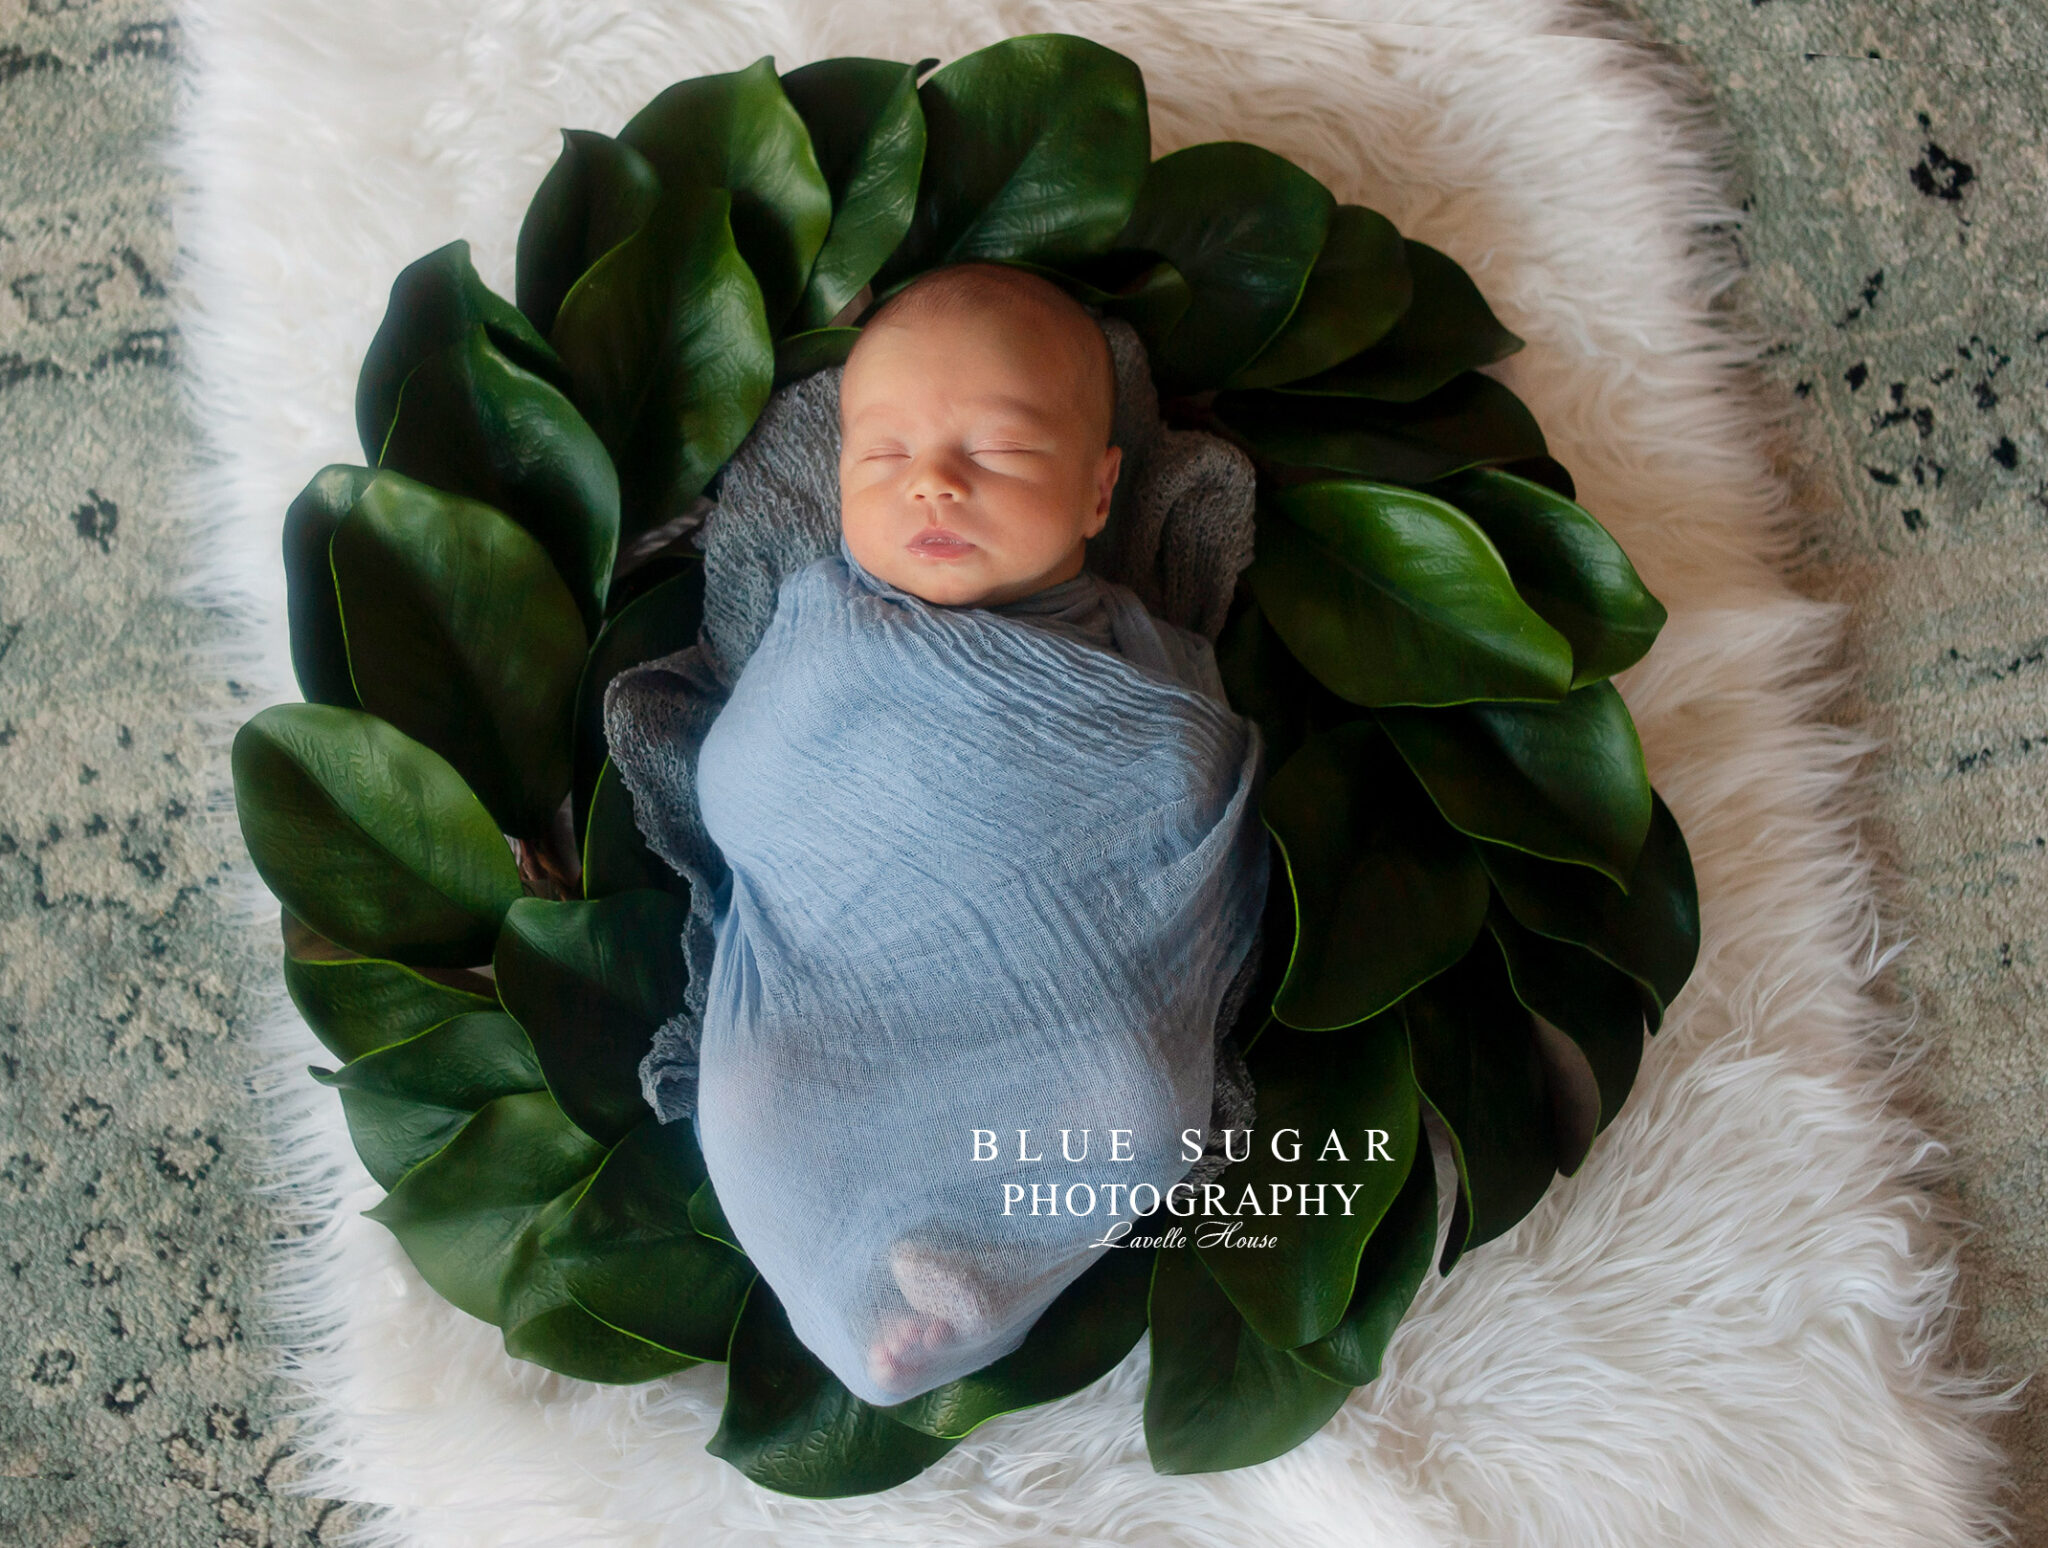 Newborn photography with props